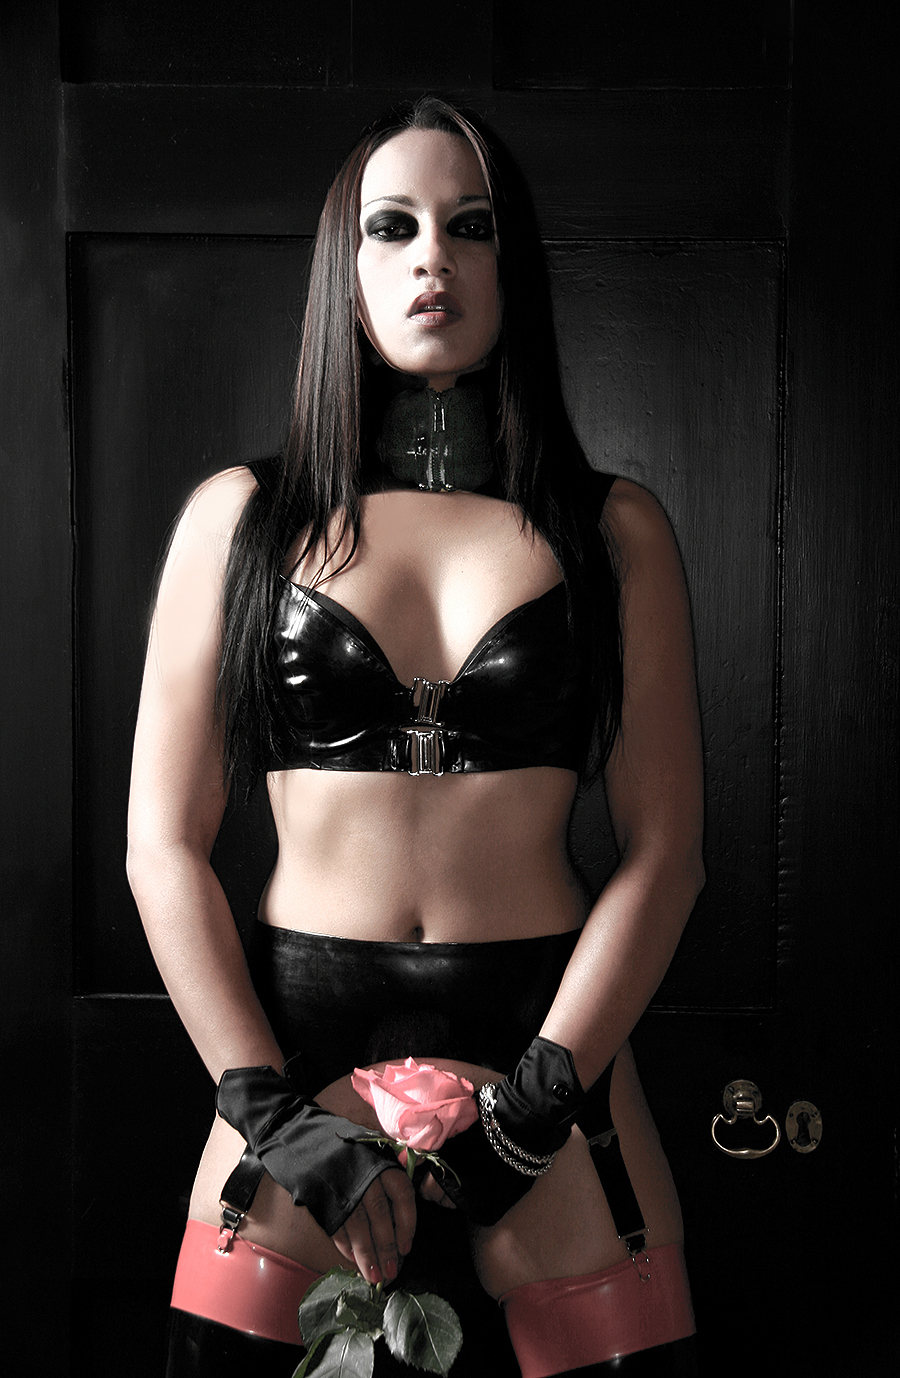 Tony_Ward_erotica_model_hannah_taboo_magazine_pink_rose_latex_blog